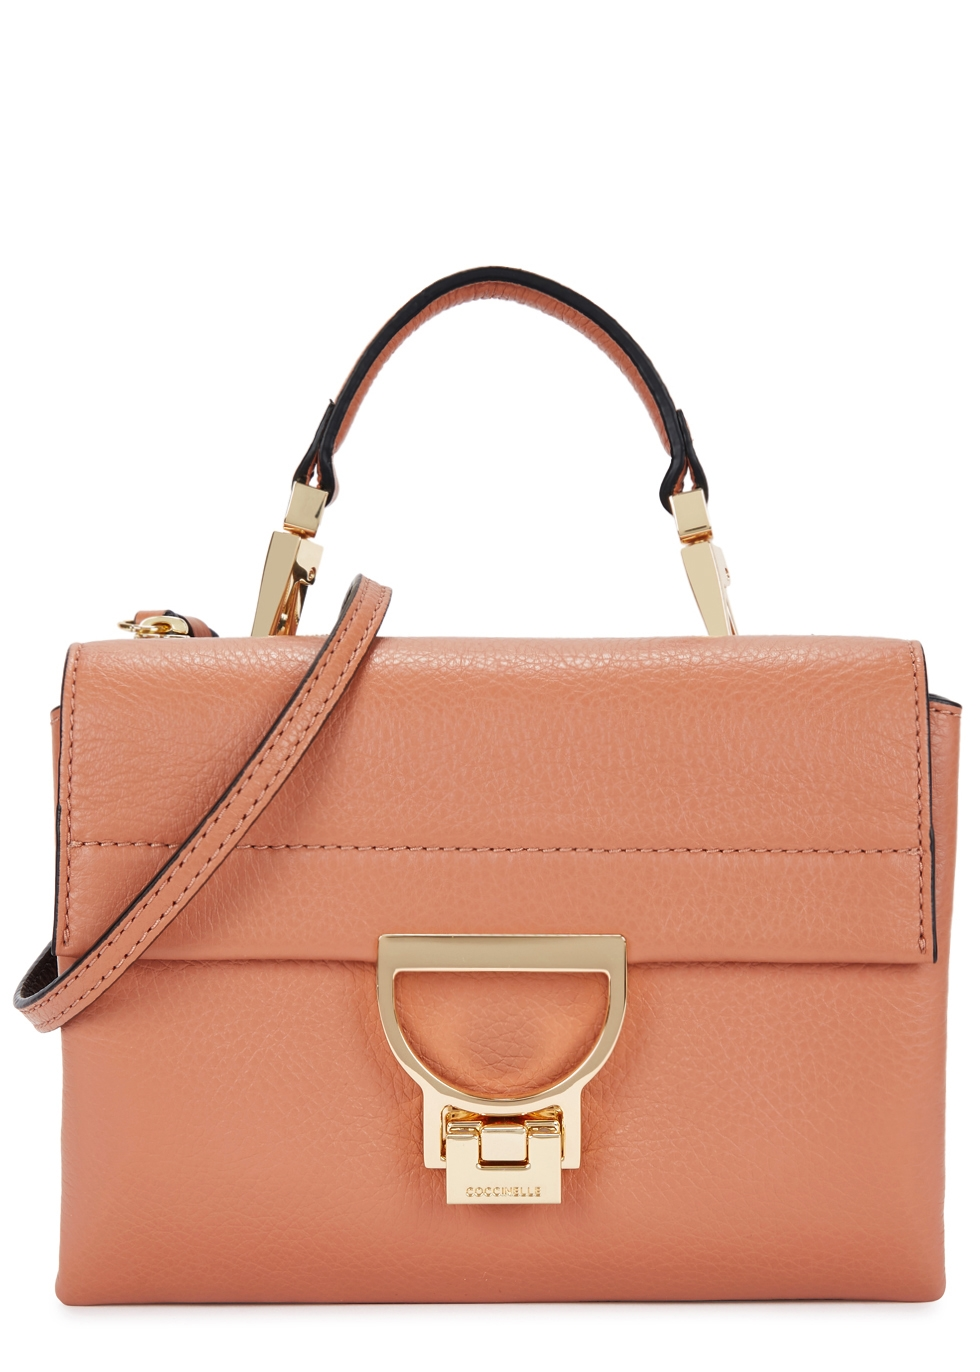 COCCINELLE ARLETTIS SALMON LEATHER CROSS-BODY BAG